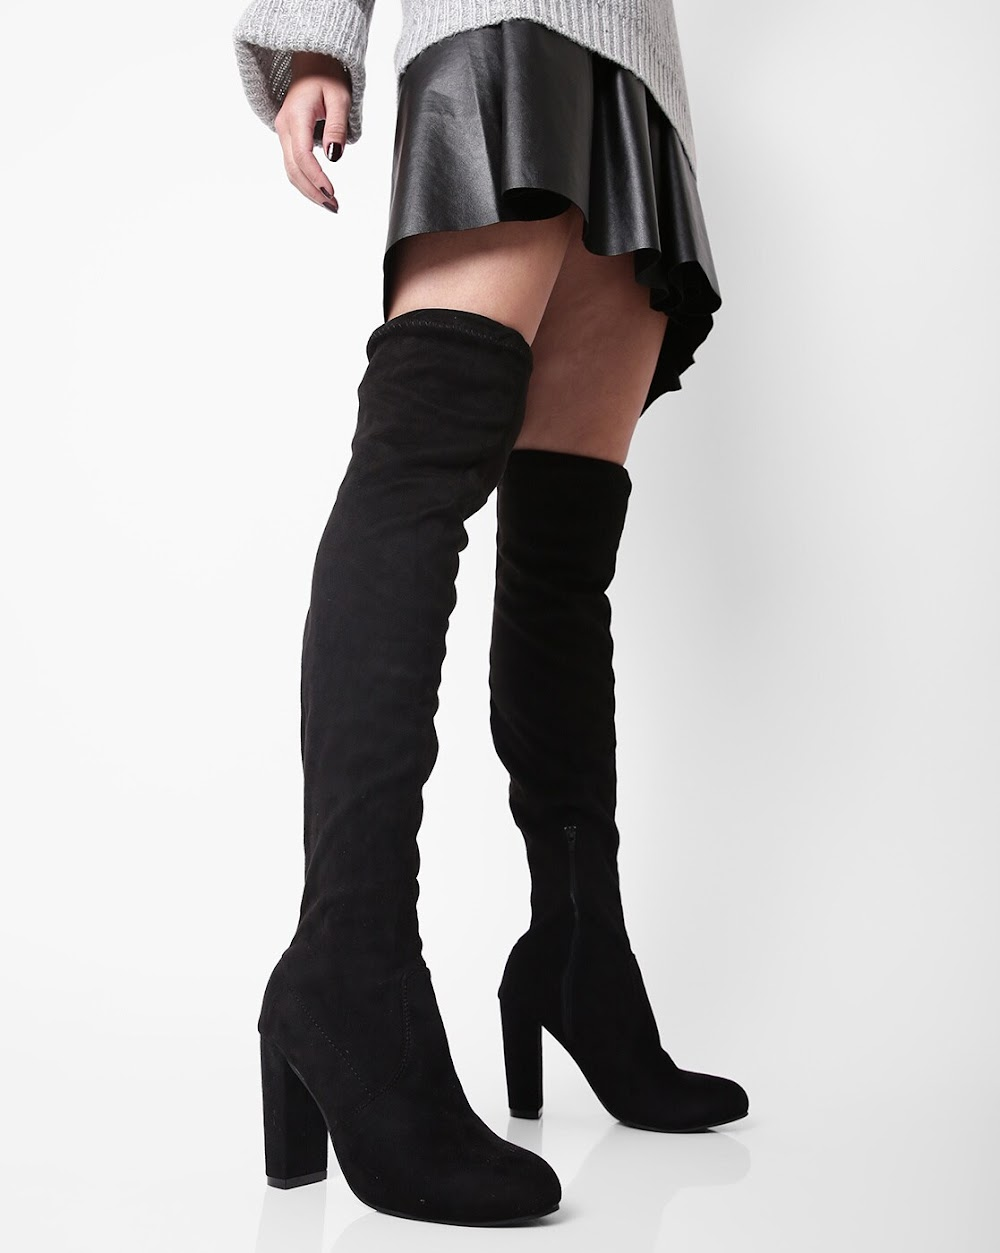 all-types-of-shoes-for-women_thigh_high